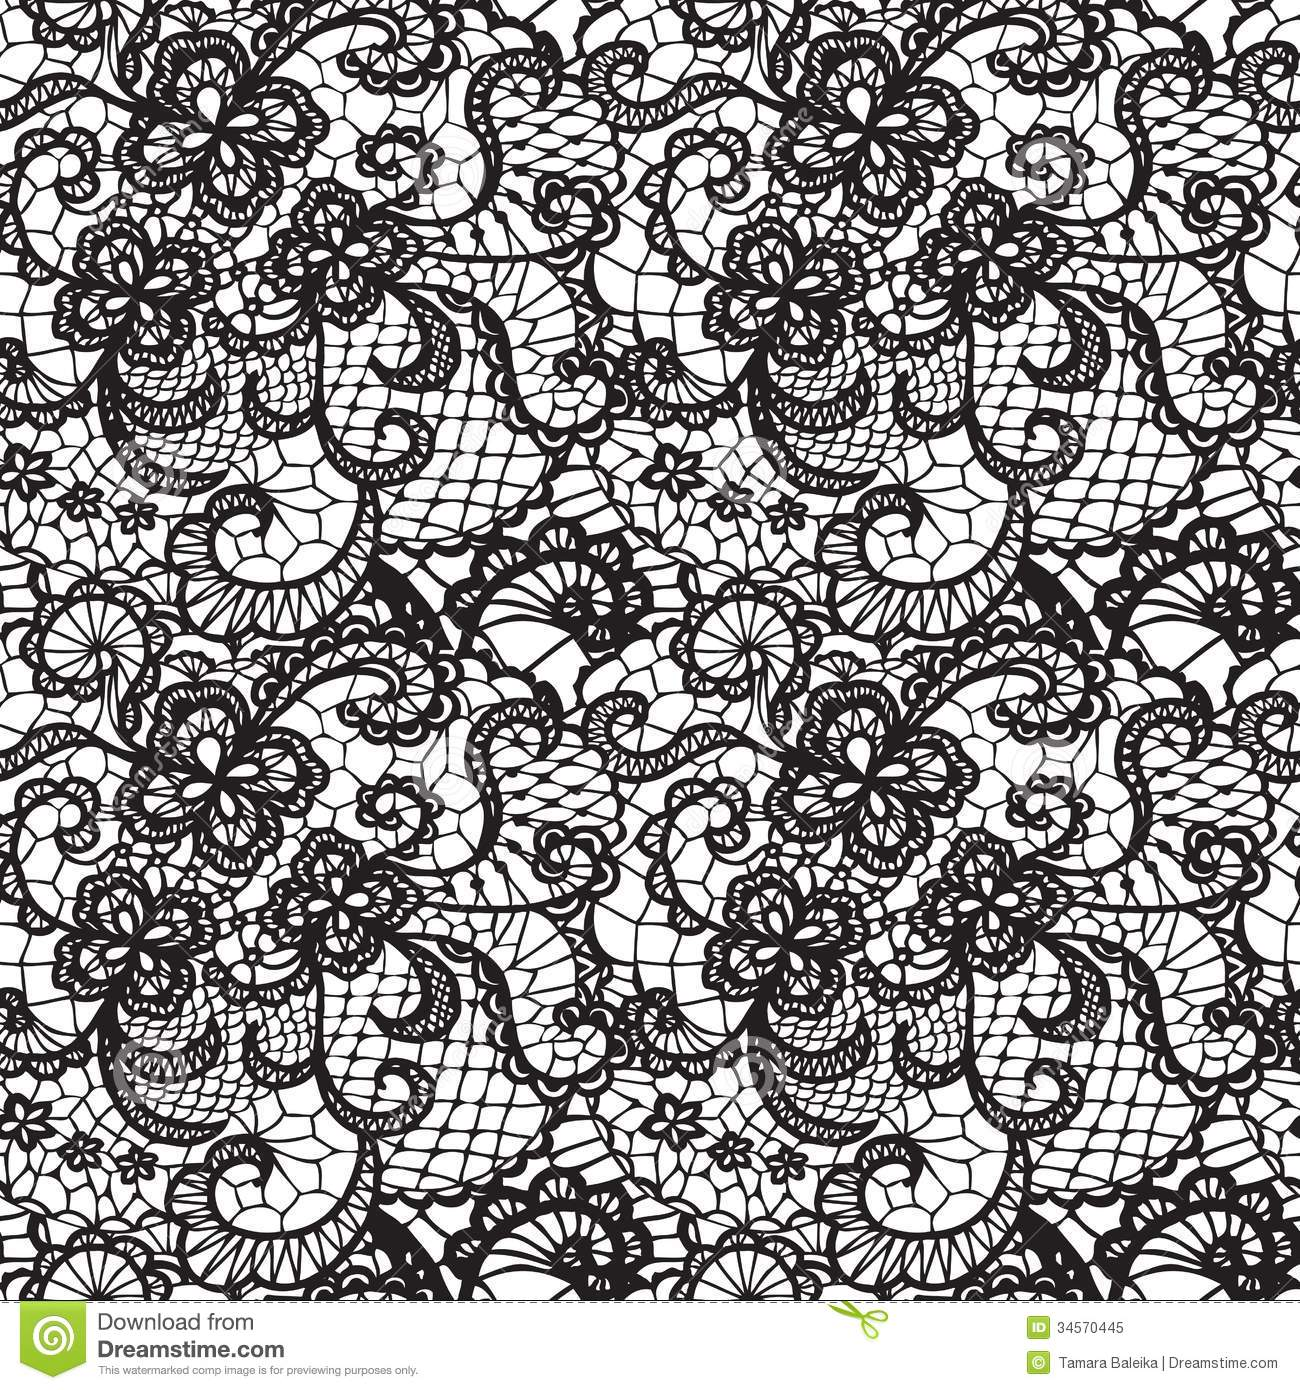 2383 Lace free clipart.